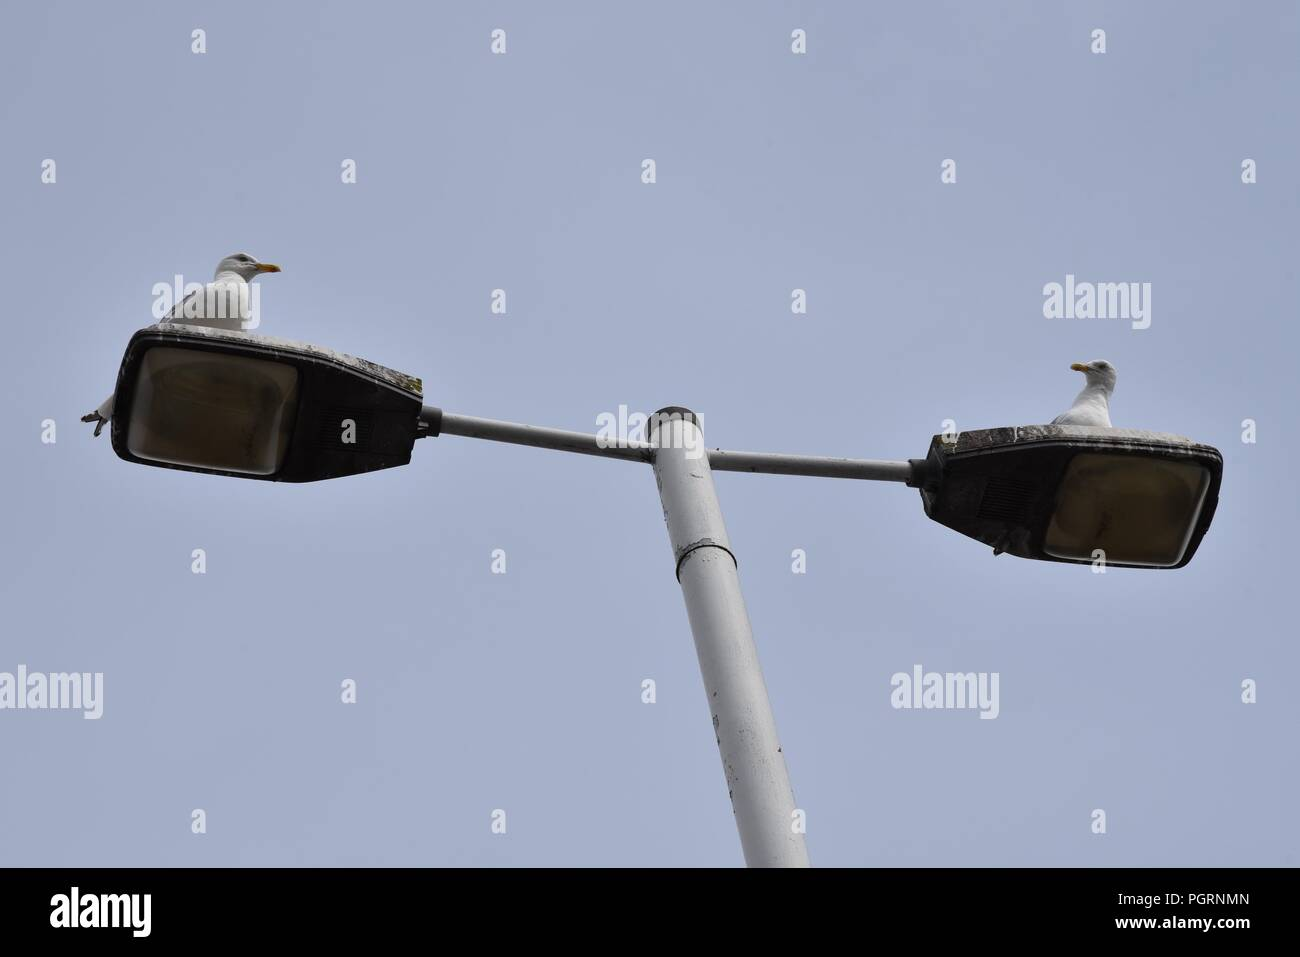 Seagulls: two individuals stake their claim atop a double-headed street light - Stock Image